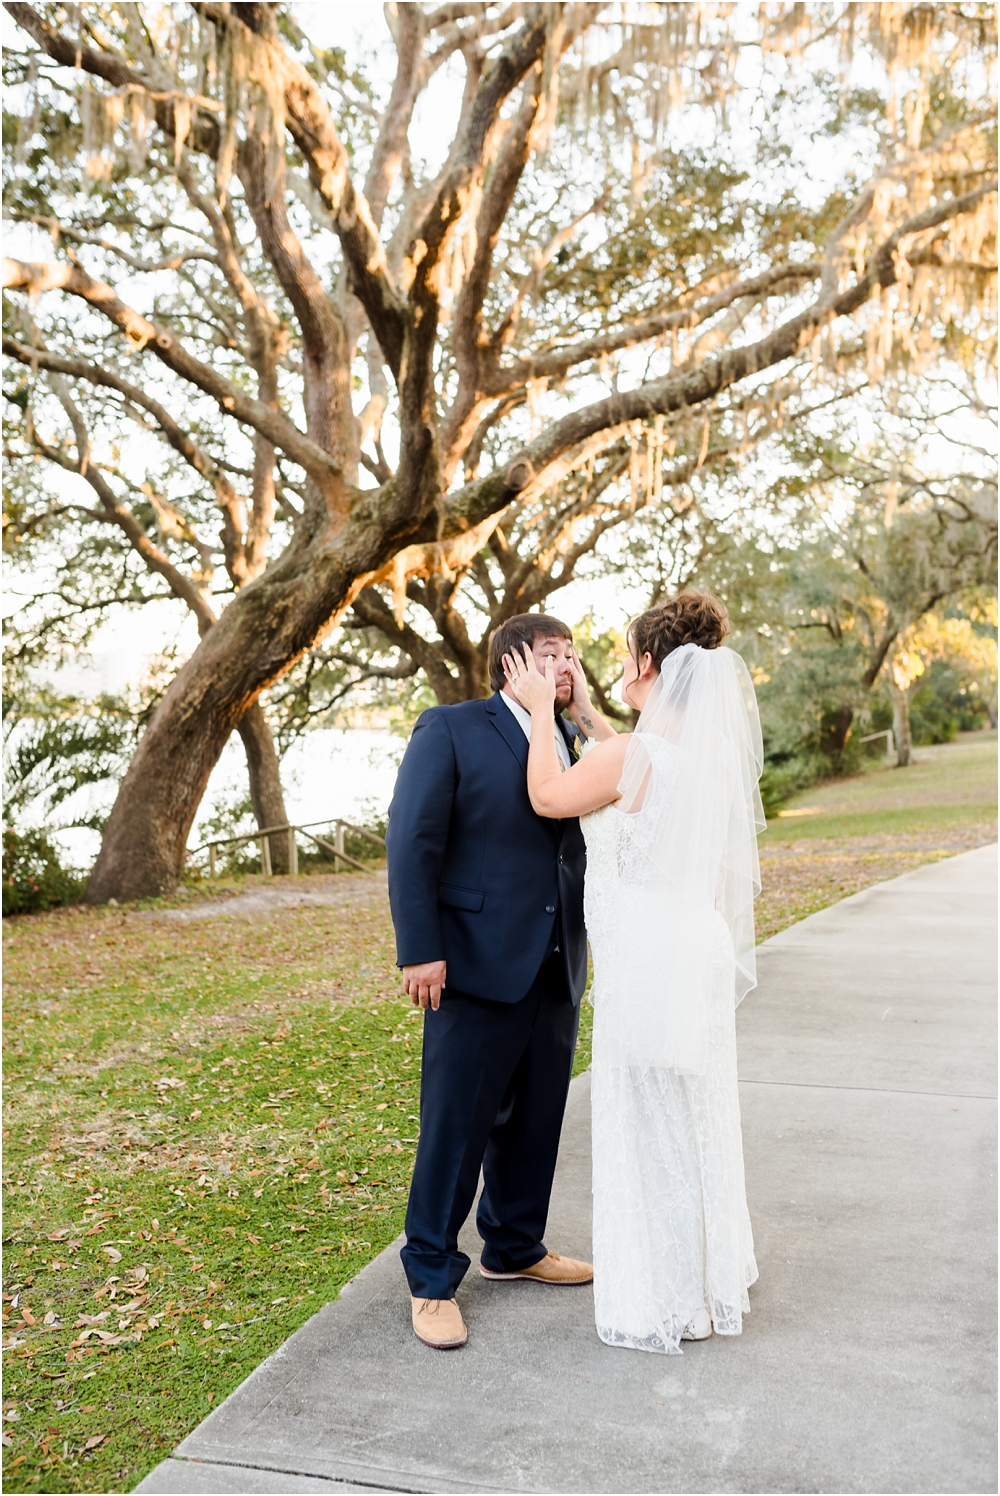 luebe-florida-wedding-photographer-kiersten-grant-92.jpg